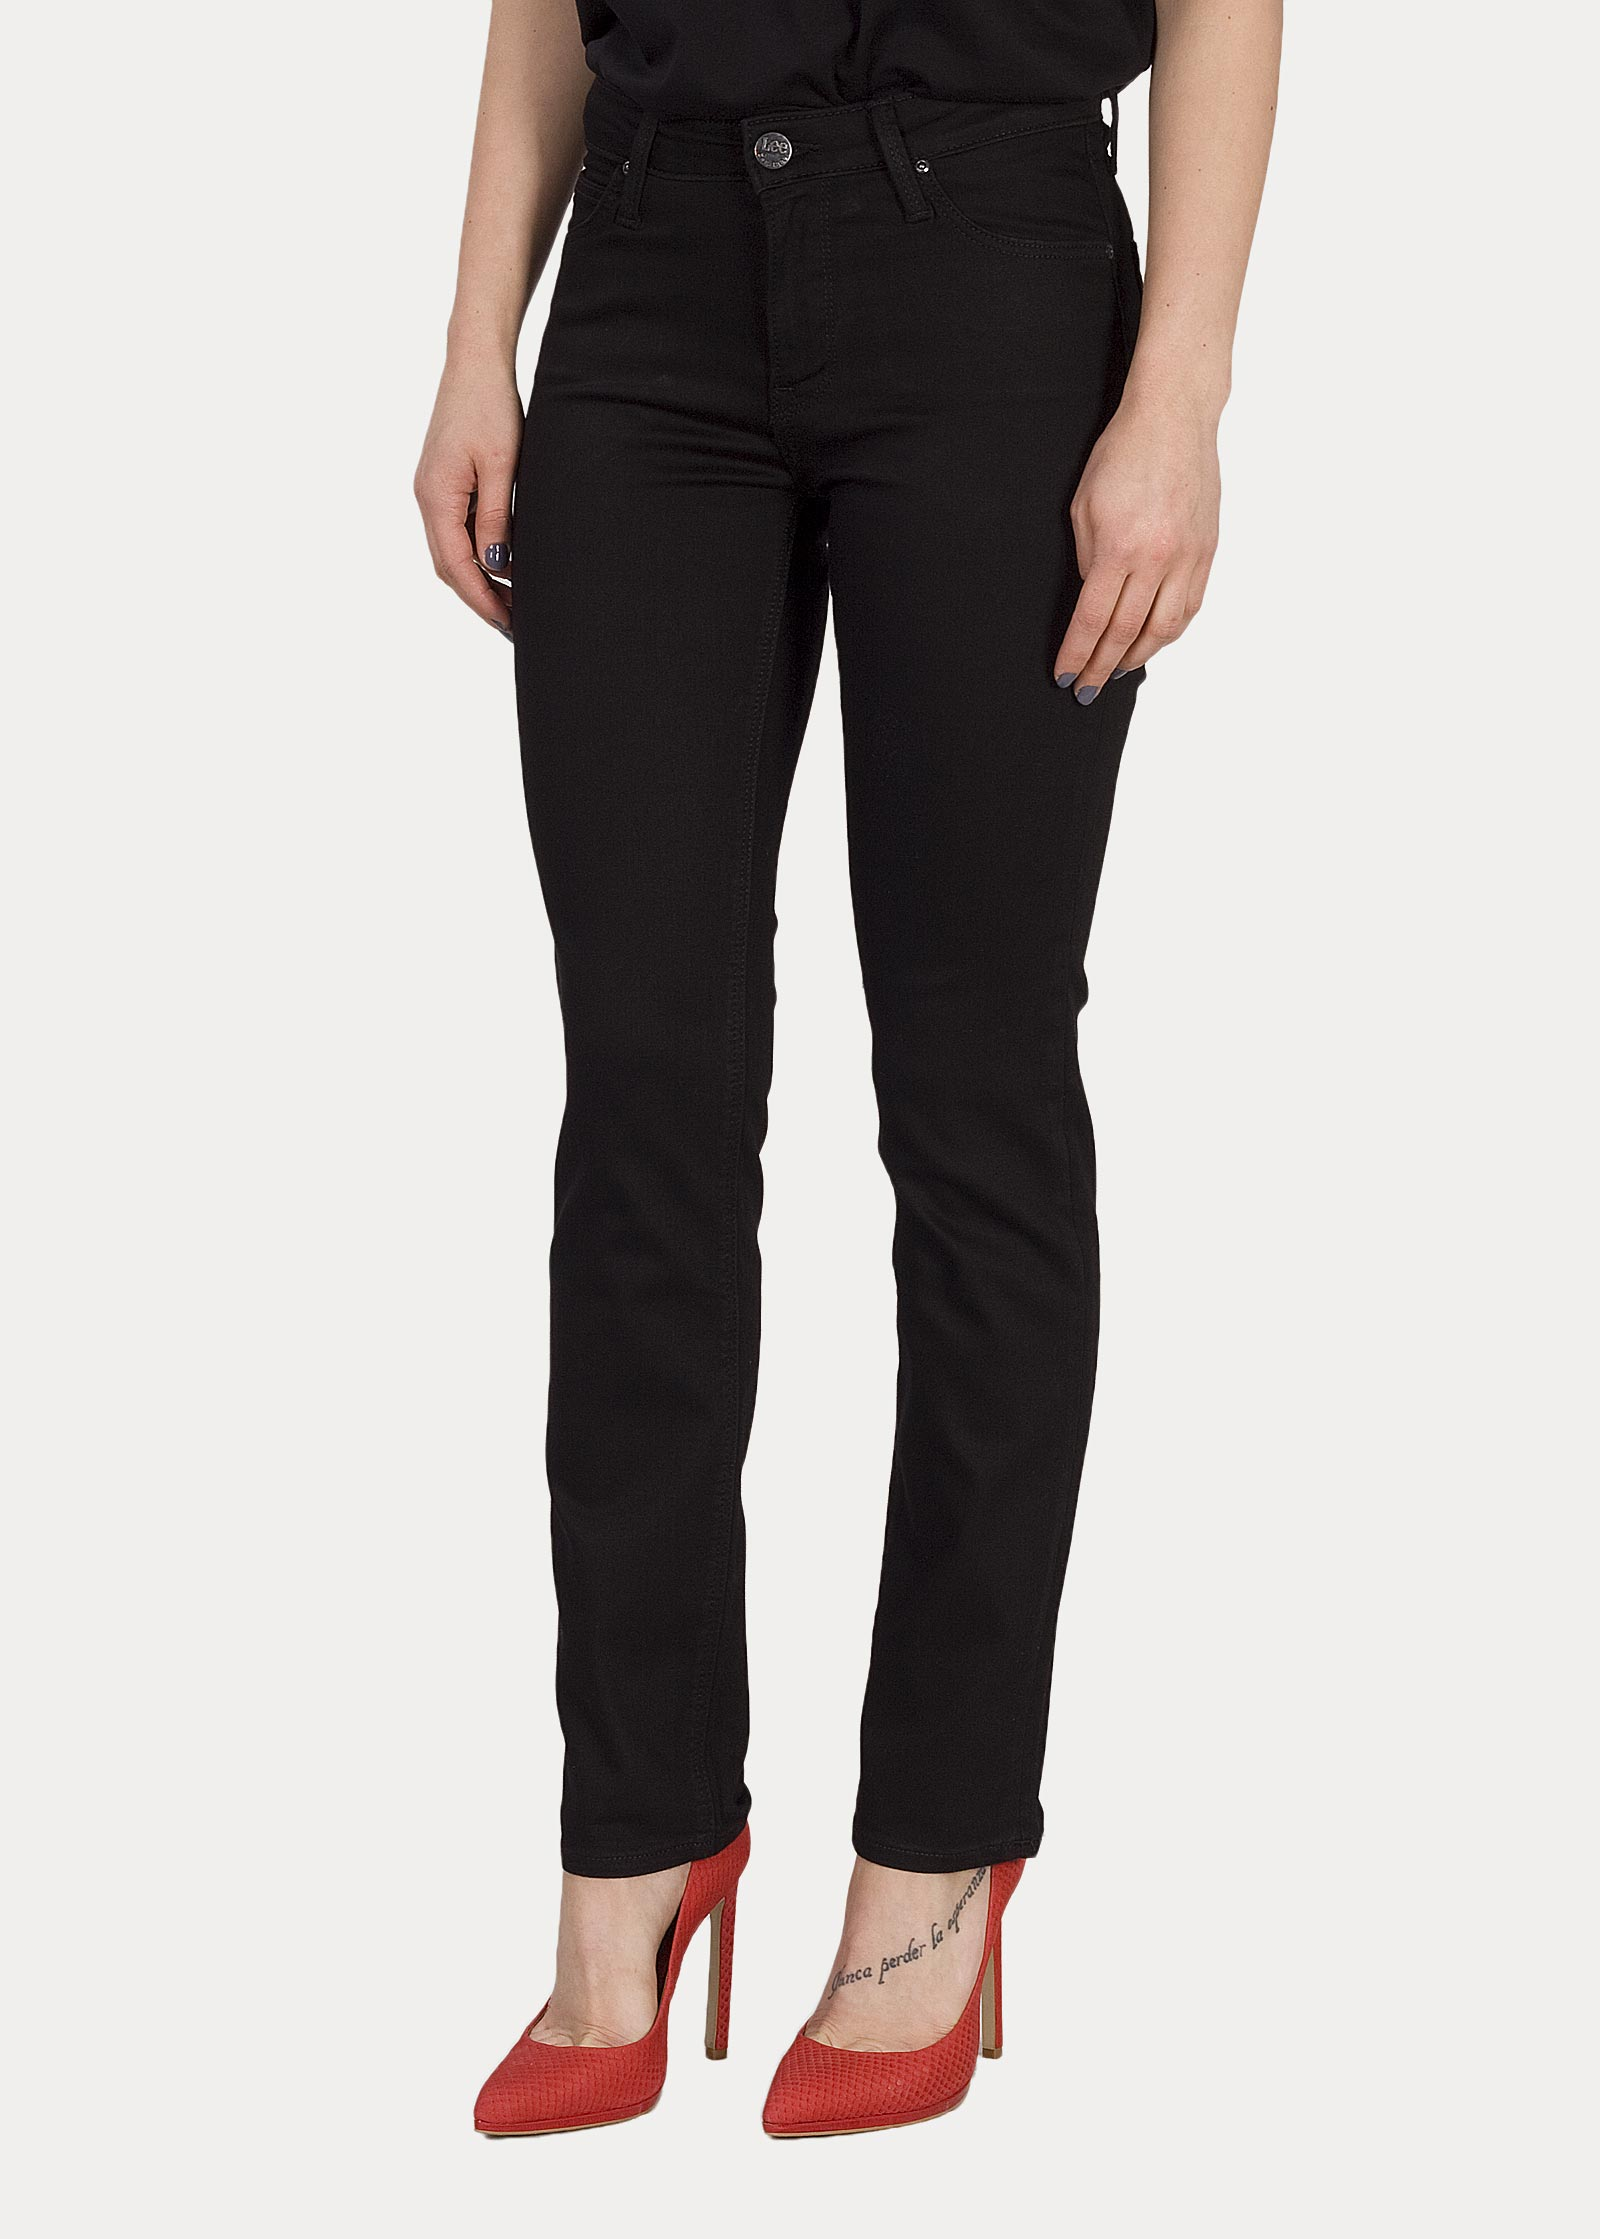 ca26c7322 Woman s Jeans Lee® Elly - Black Rinse (L305FS47) - Jeans24h - Your ...